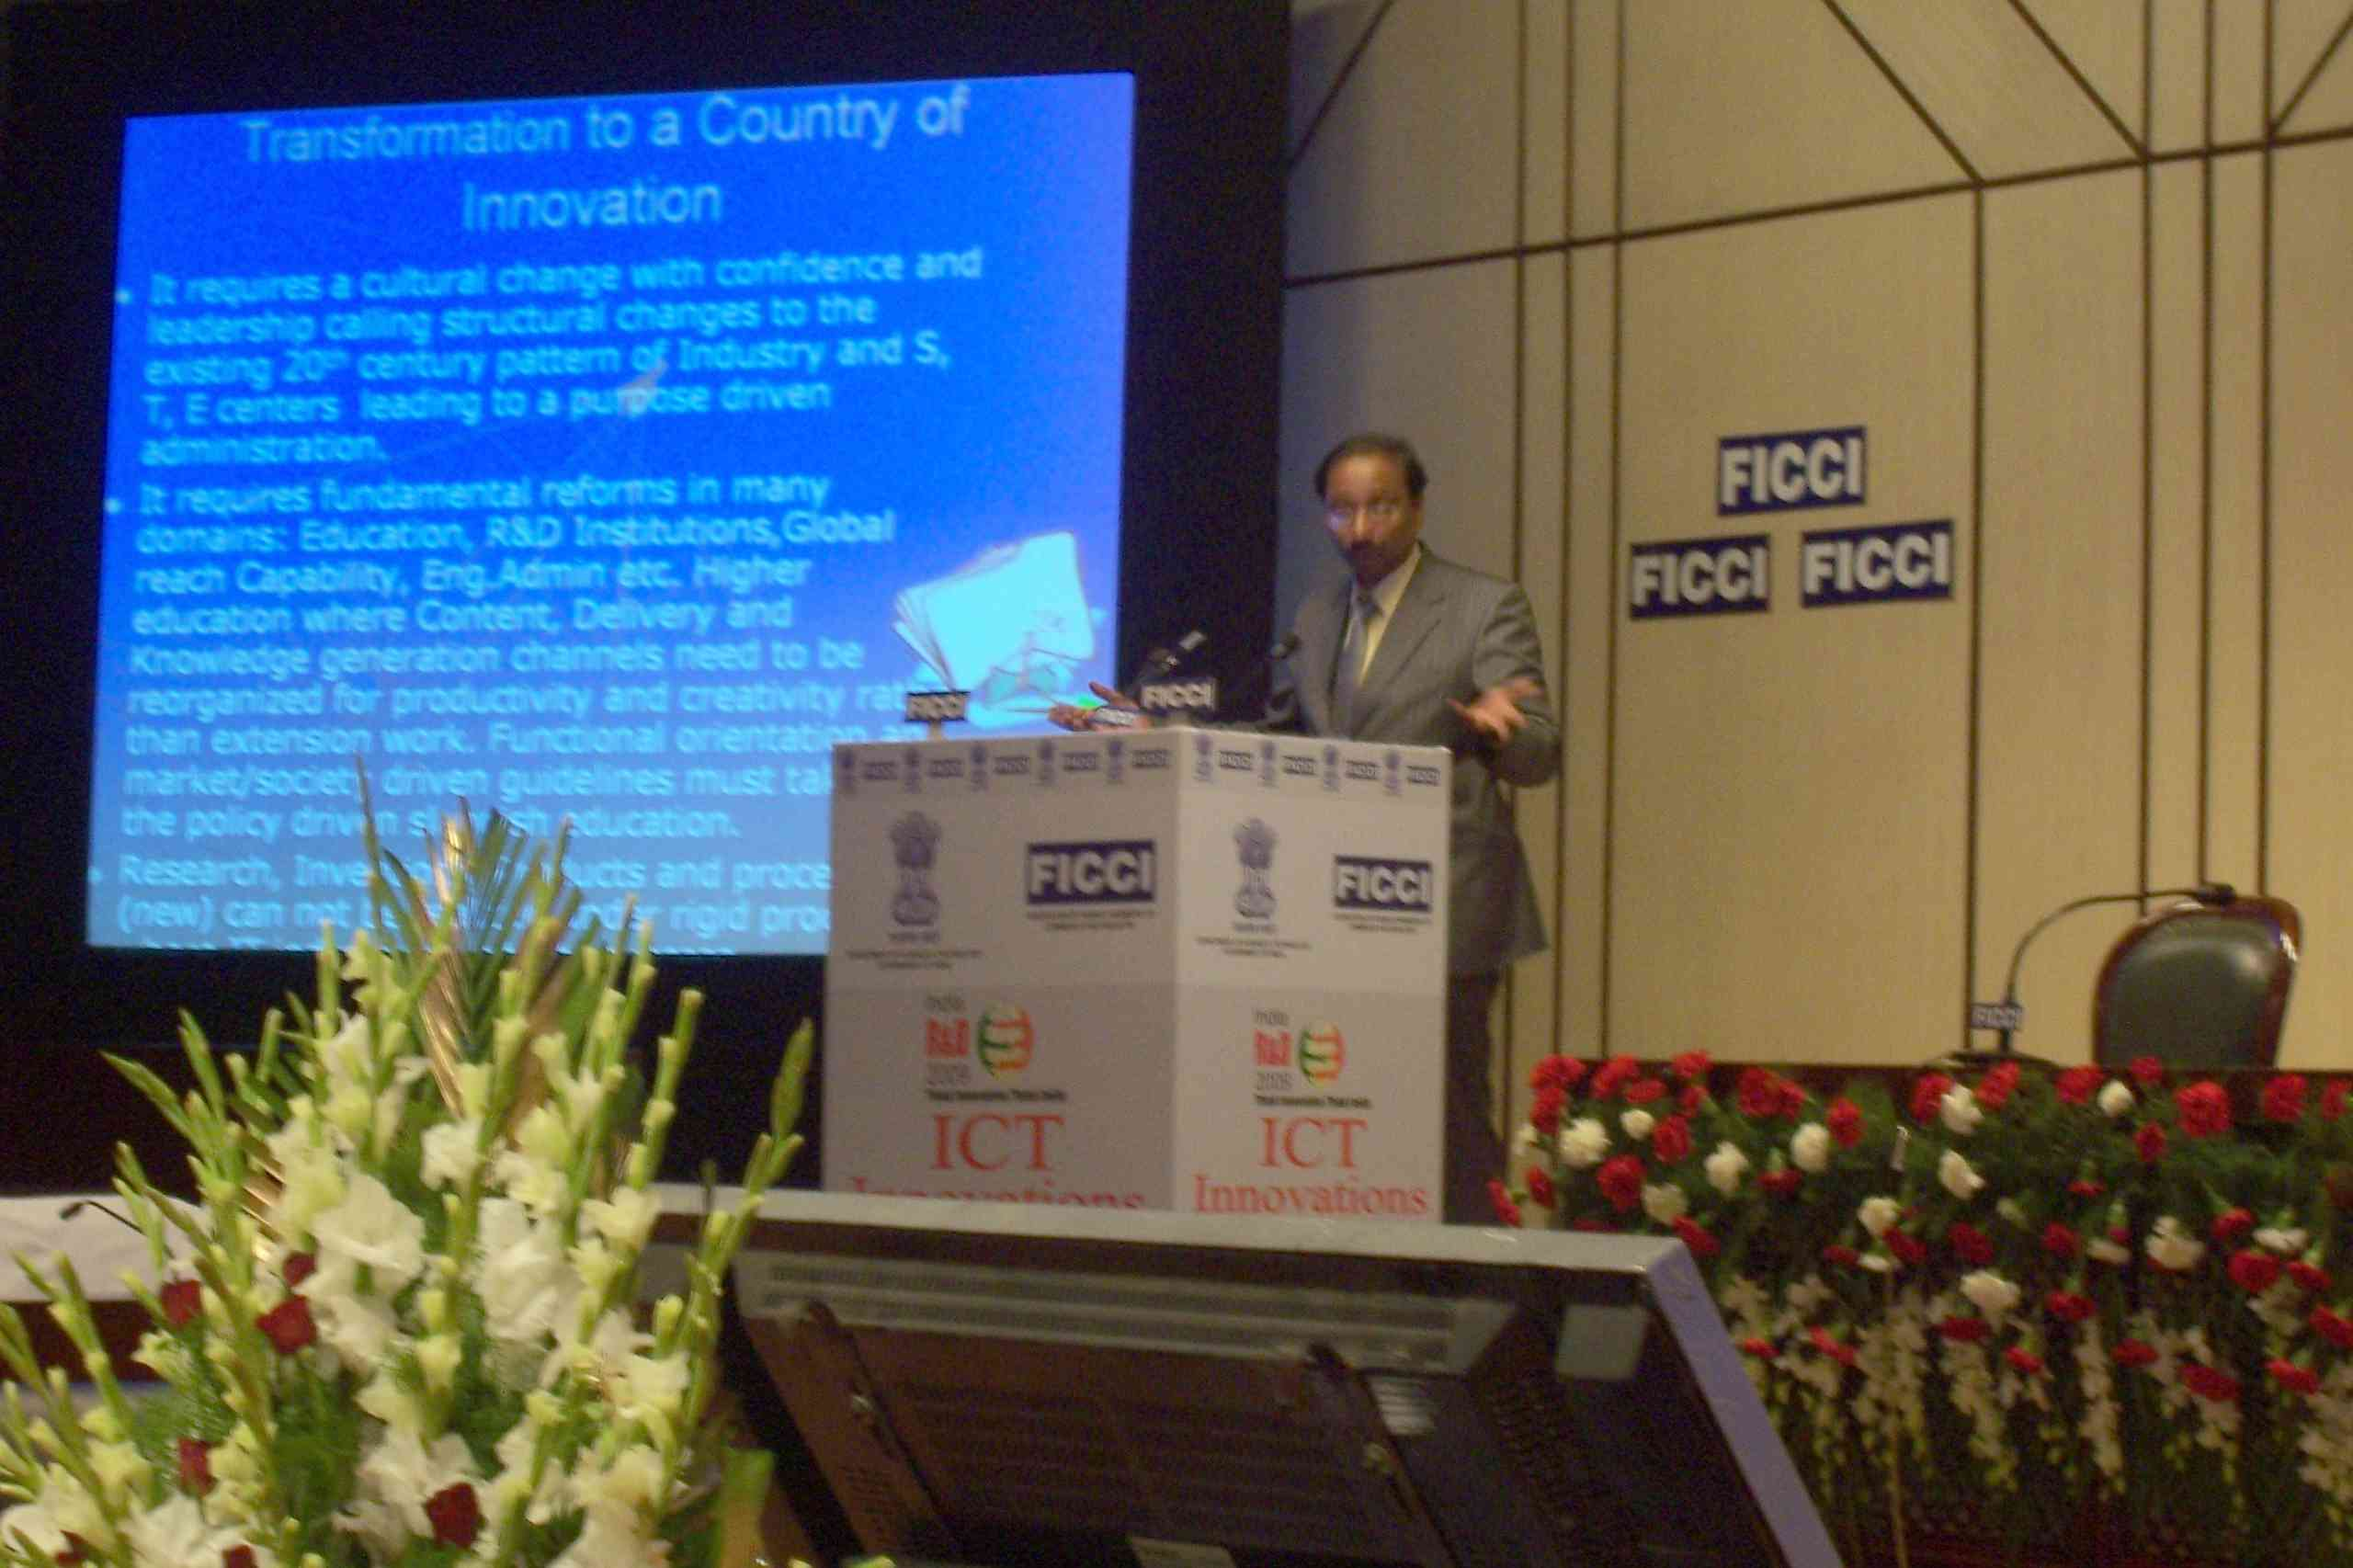 Address FICCI, Innovations in ICT